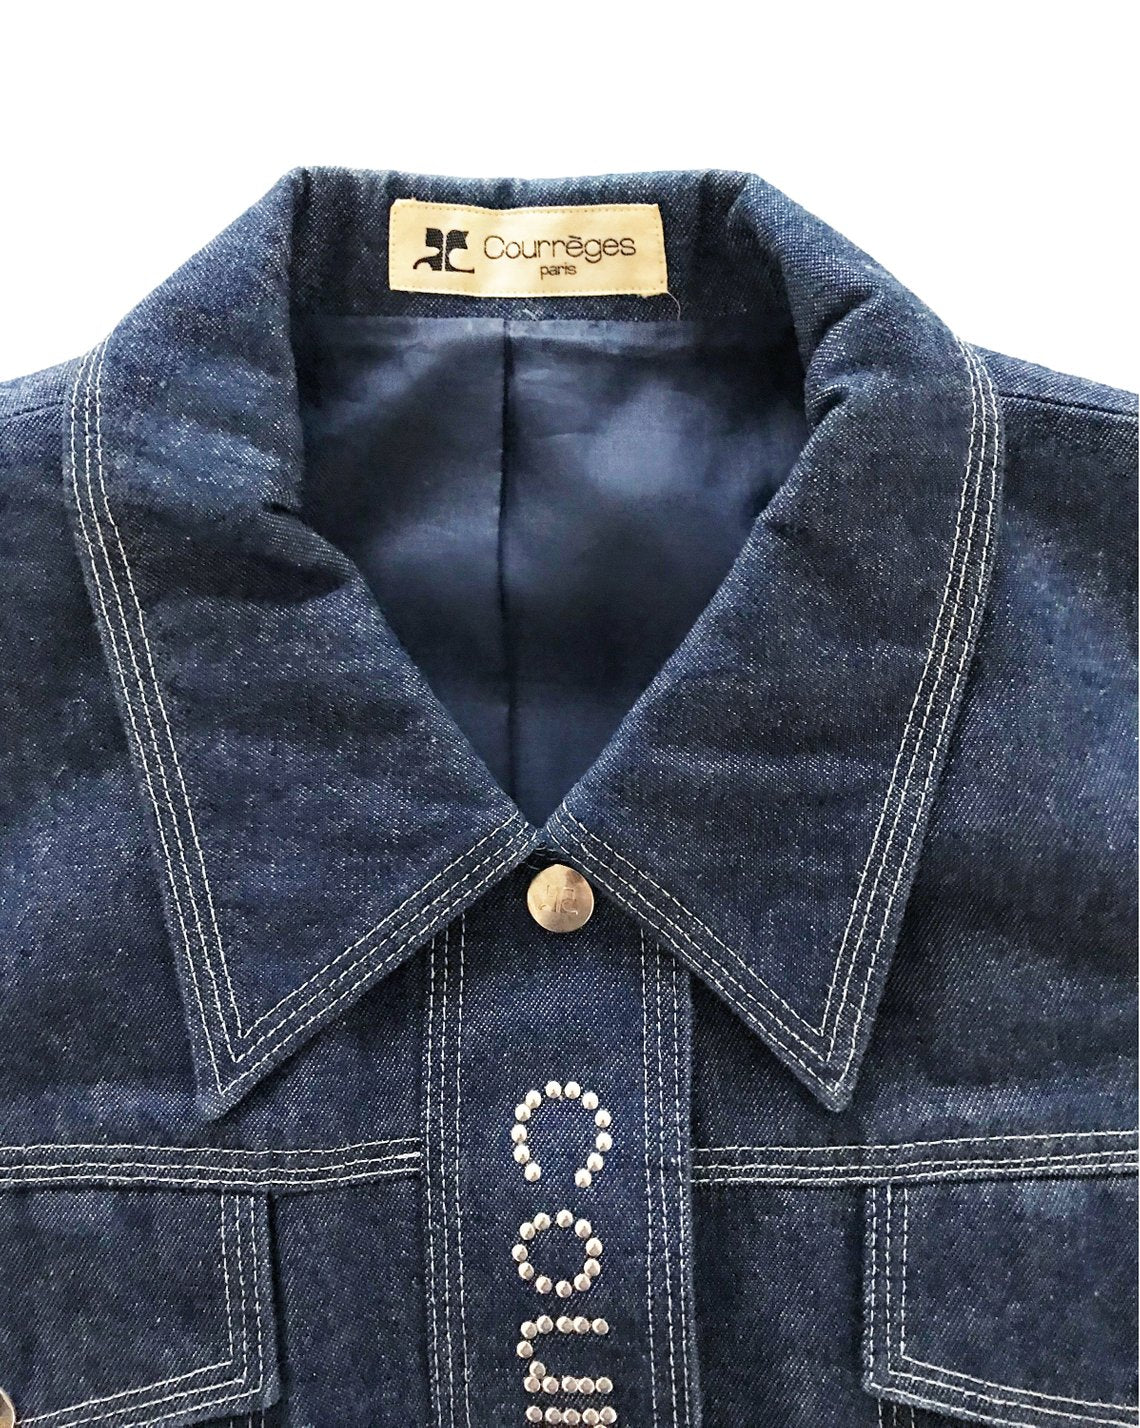 Fruit Vintage Courreges denim logo dress. Features a large silver logo at front, top stitching and logo buttons. Can also be fully unbuttoned and worn as coat/duster jacket.